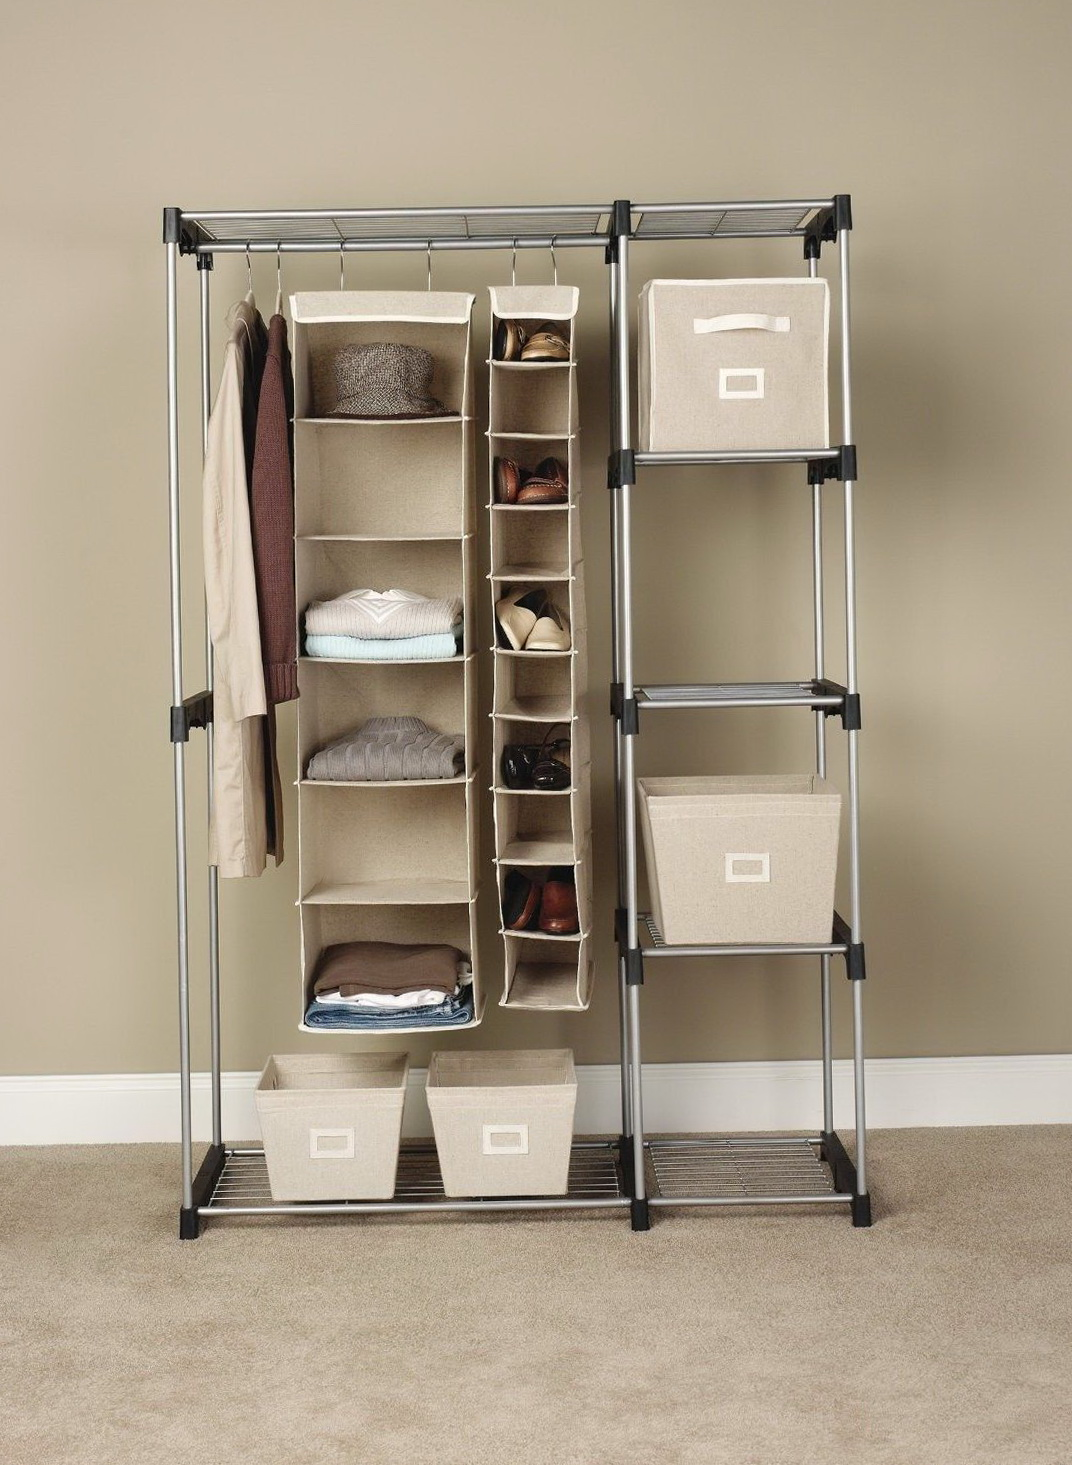 pros secret standing shelves popular for closet image only techniques know free rack of the